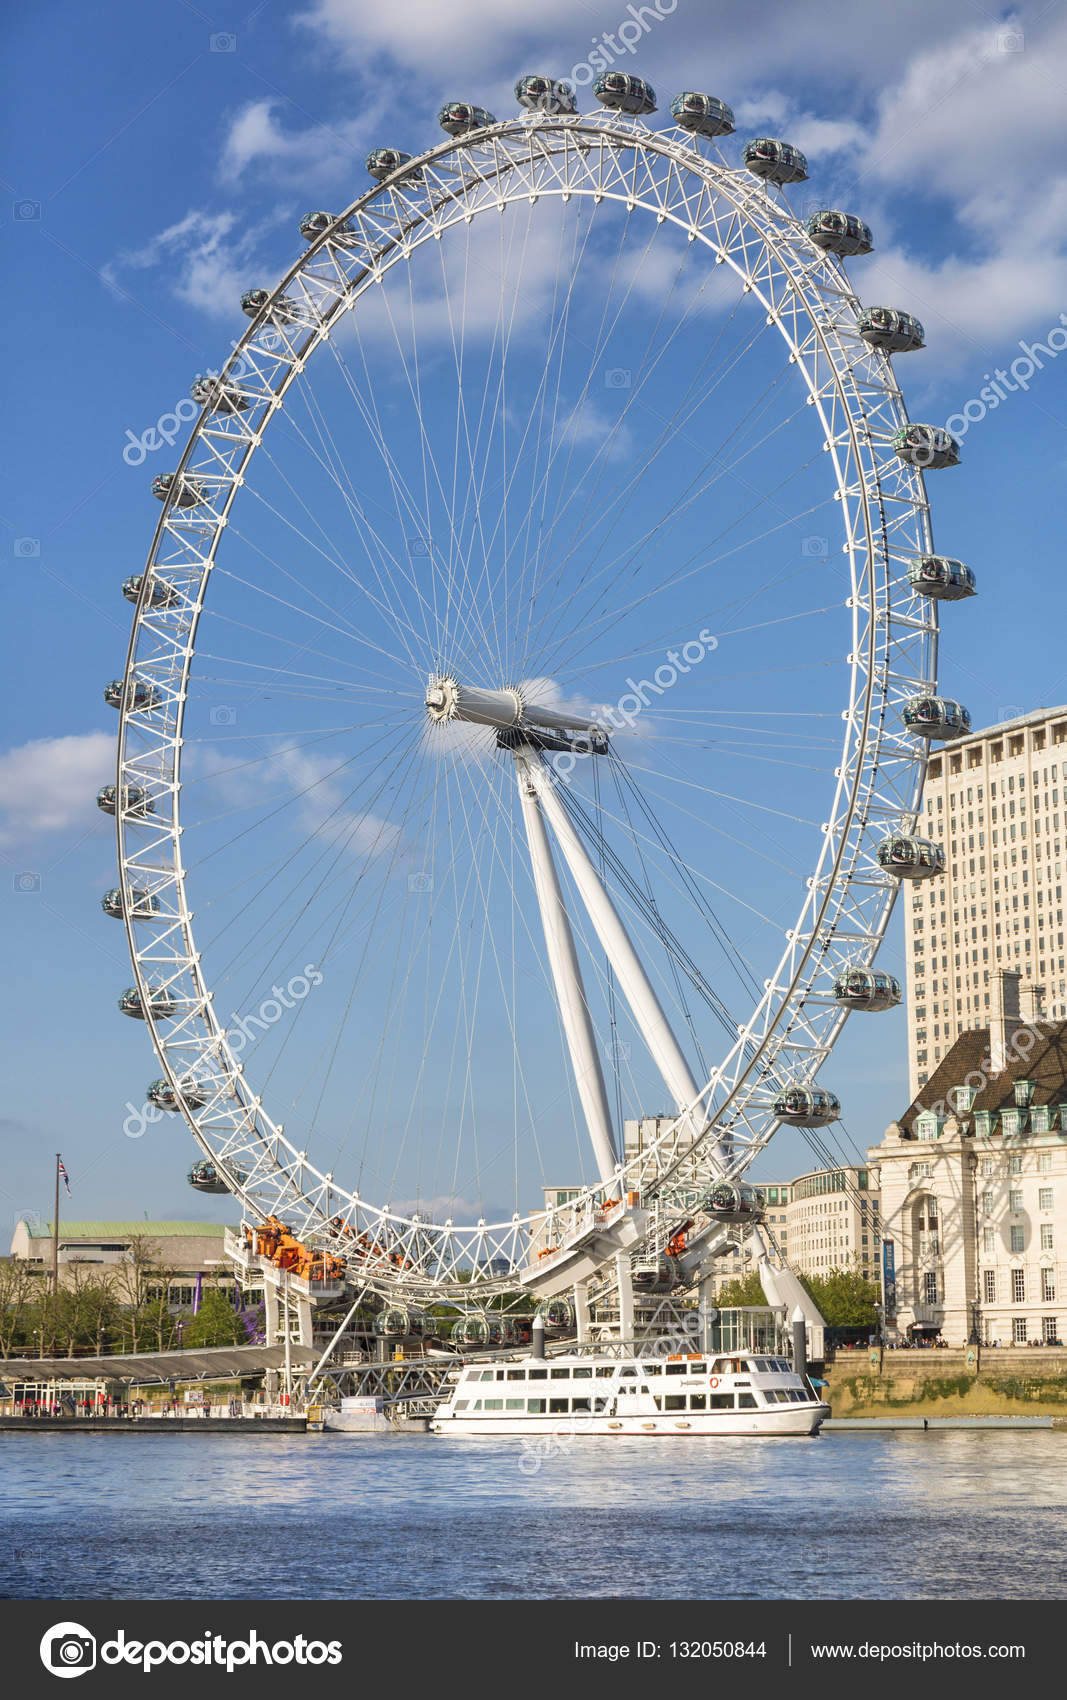 london eye in london redaktionelles stockfoto norabana 132050844. Black Bedroom Furniture Sets. Home Design Ideas